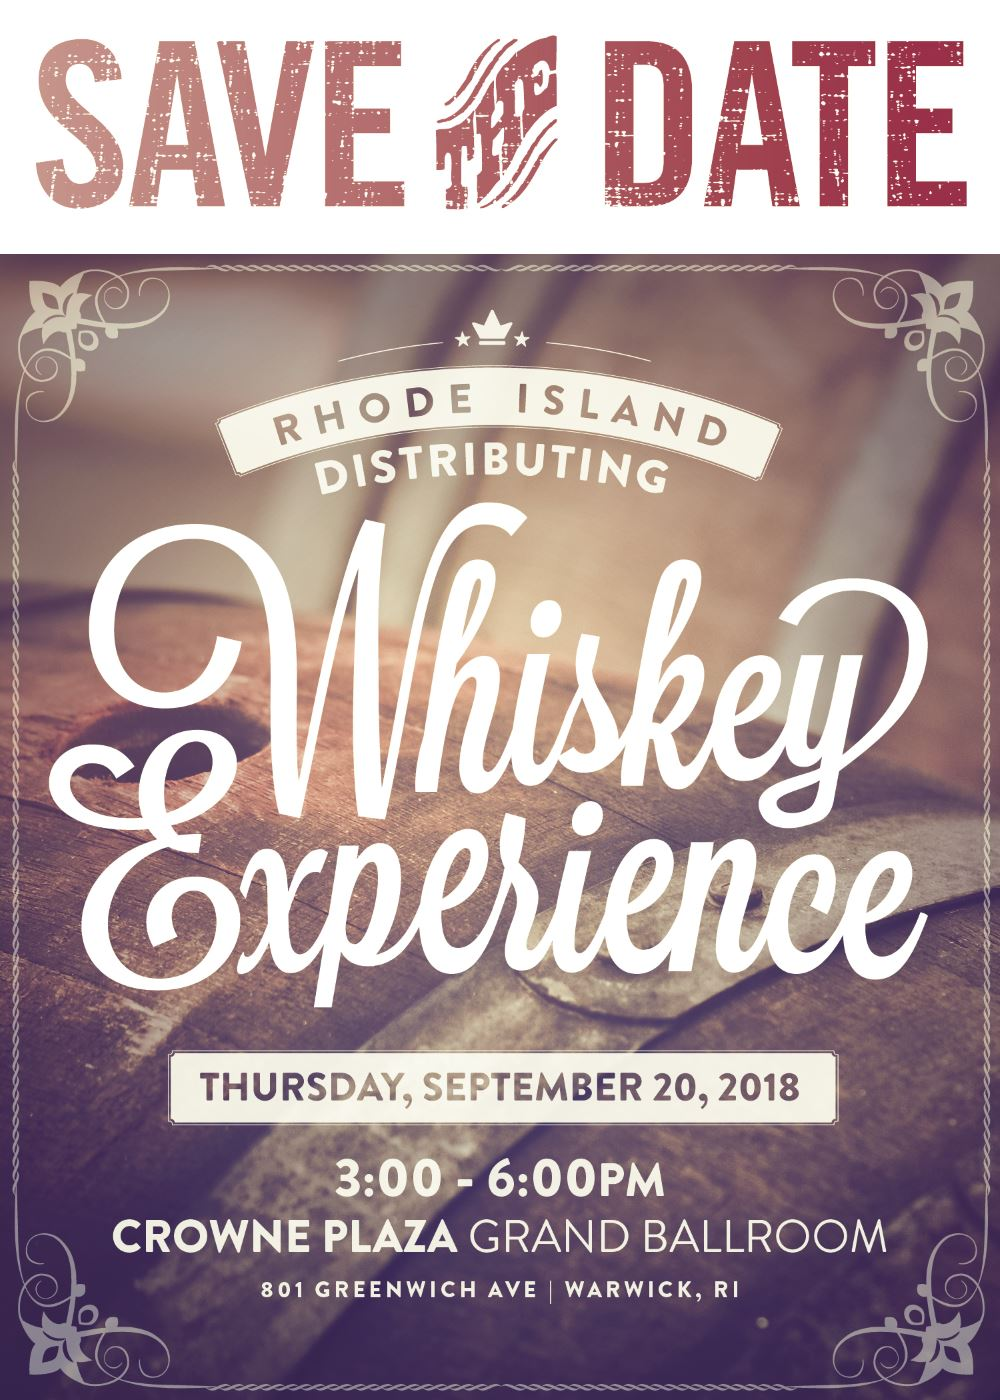 September 20, 2018: RIDC Fall Whiskey Experience Trade Show